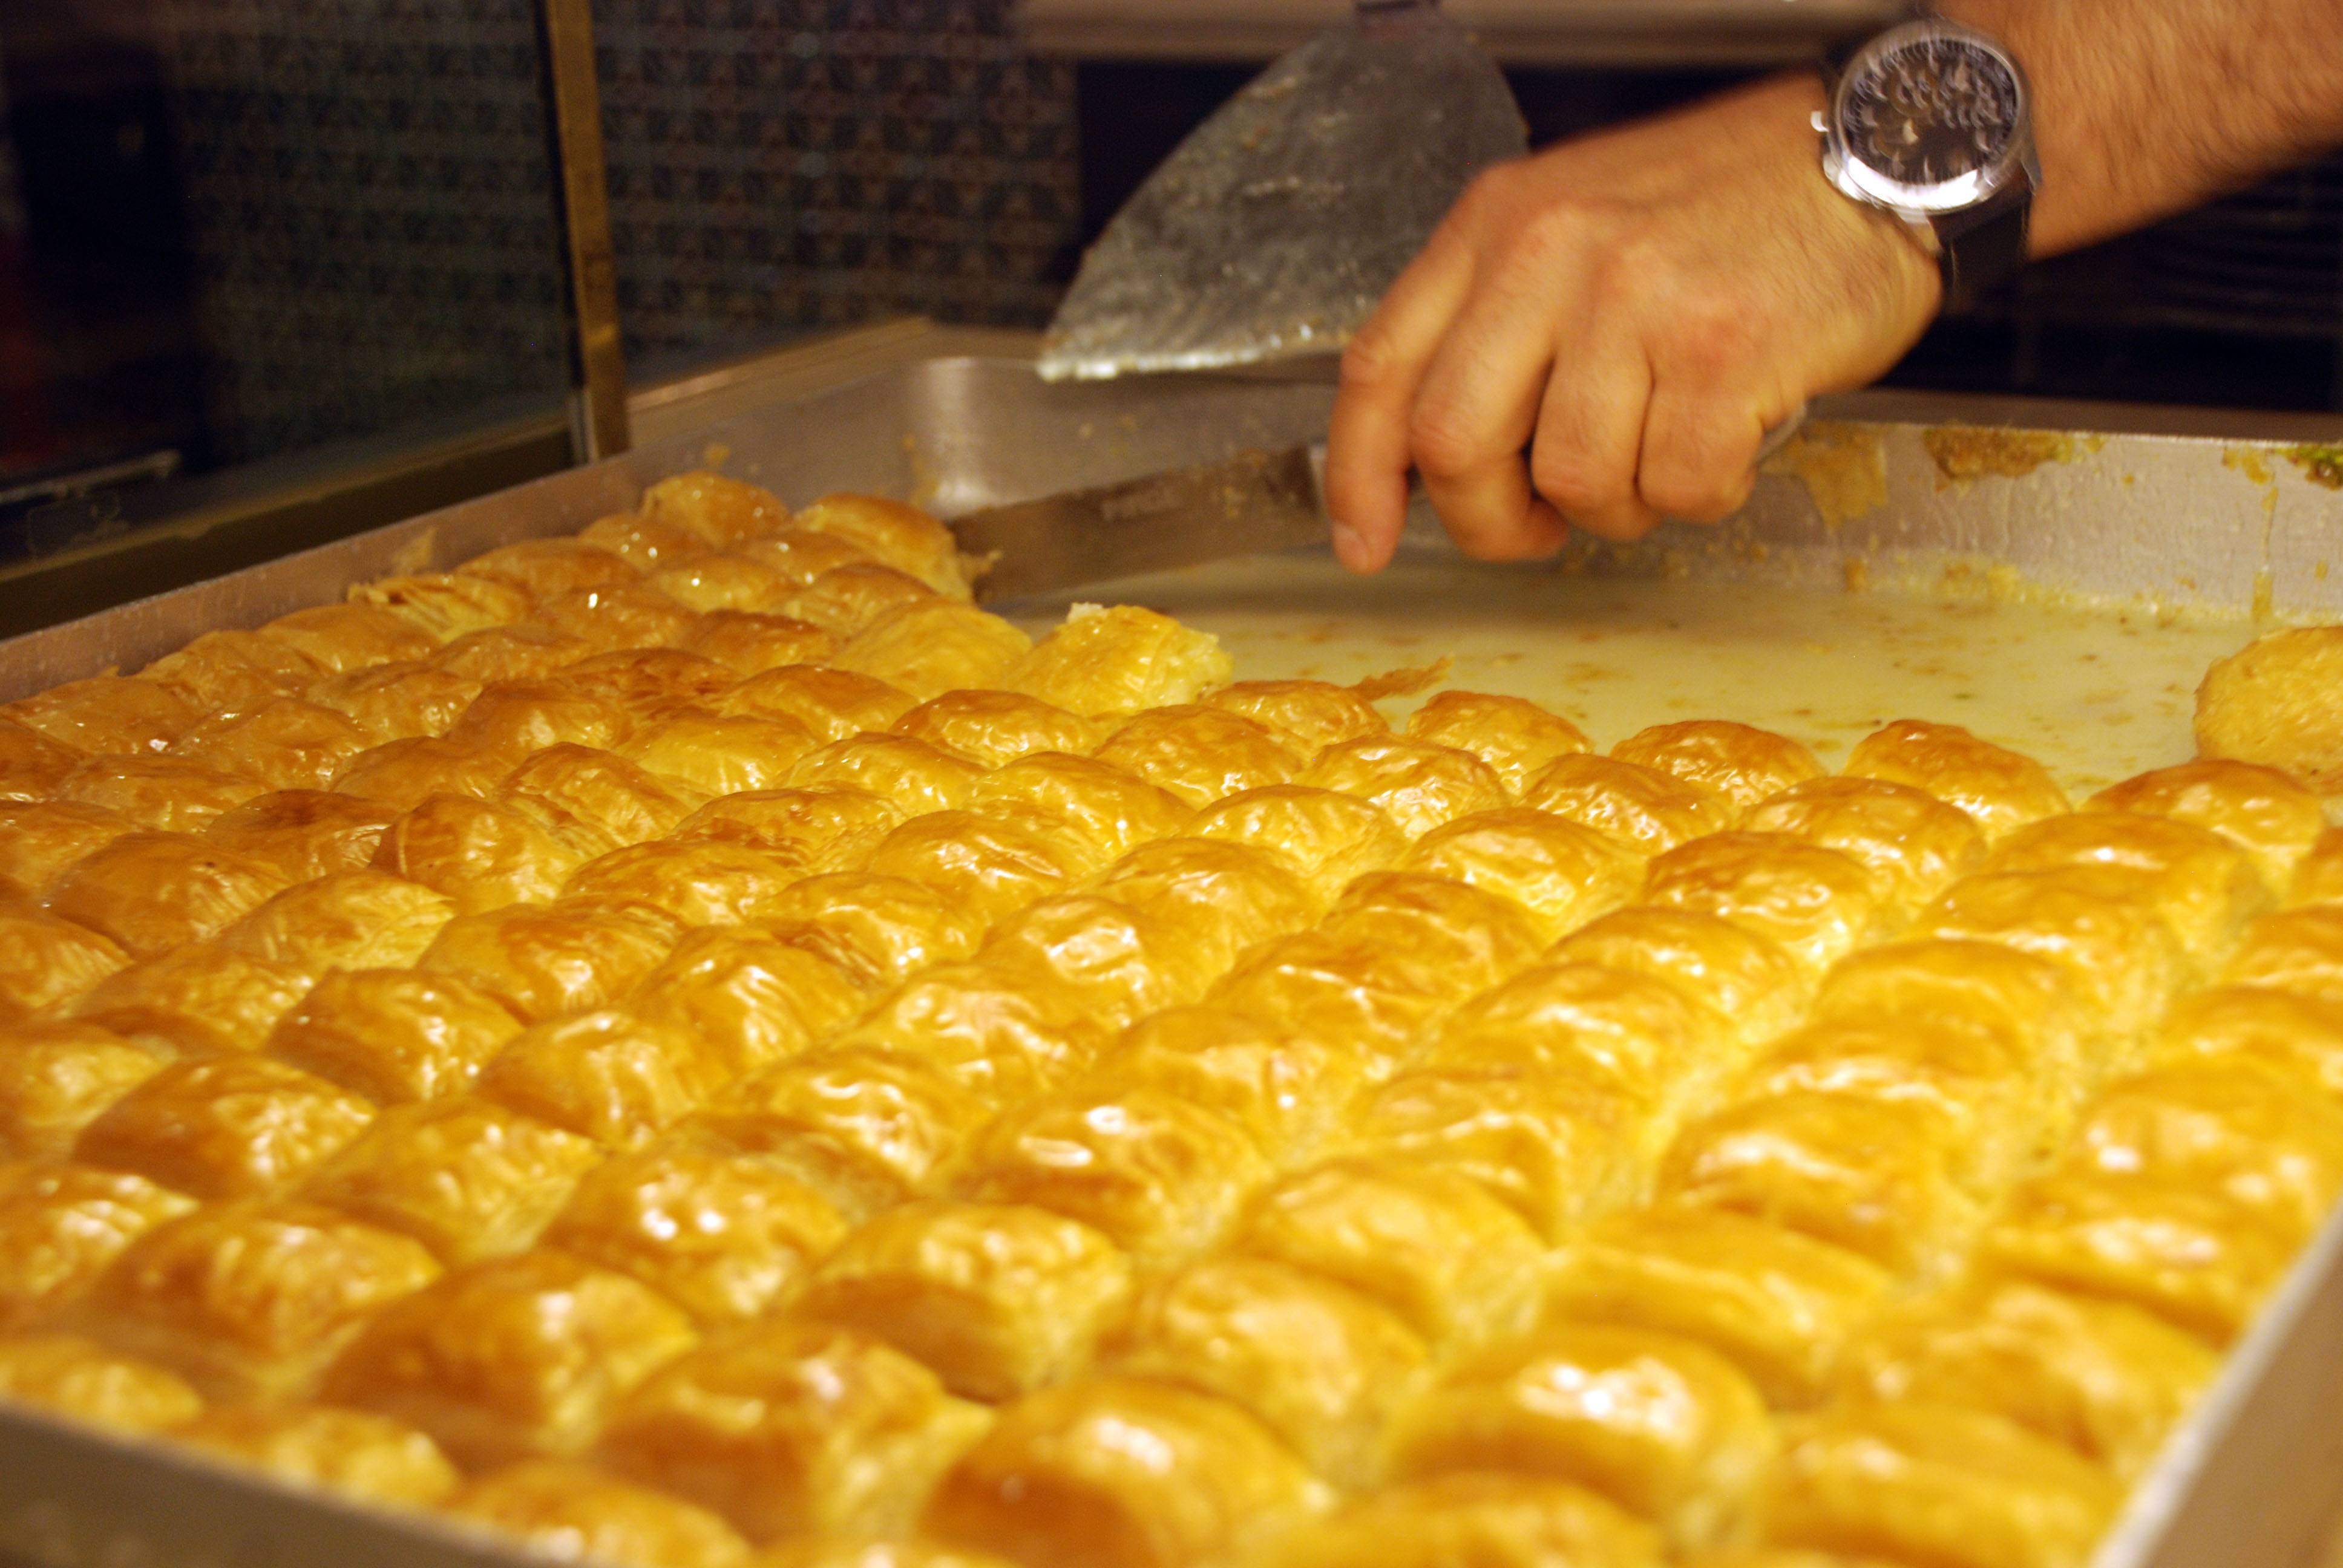 The sutlu Nuriye is a puffier, creamier version of baklava that is sold in the neighborhood of Karakoy in Istanbul, Turkey.